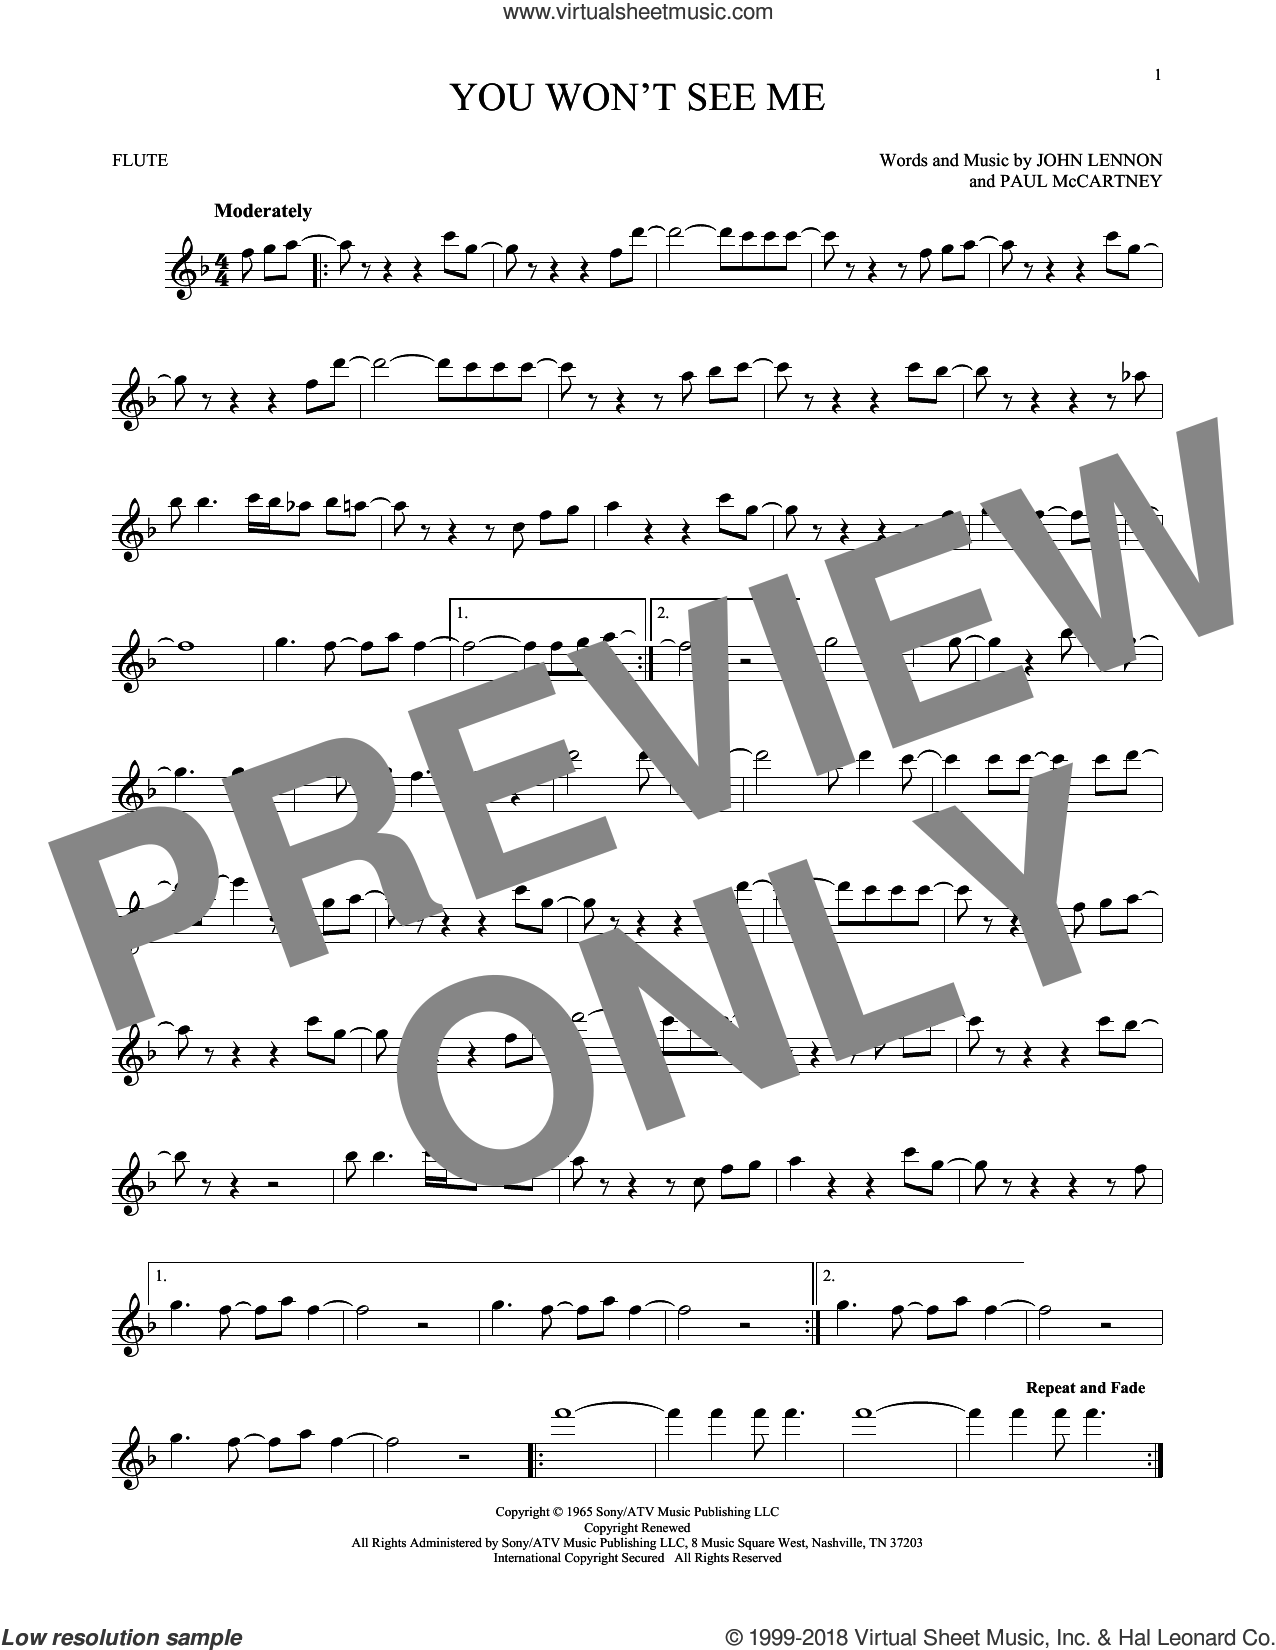 You Won't See Me sheet music for flute solo by Paul McCartney, The Beatles and John Lennon. Score Image Preview.